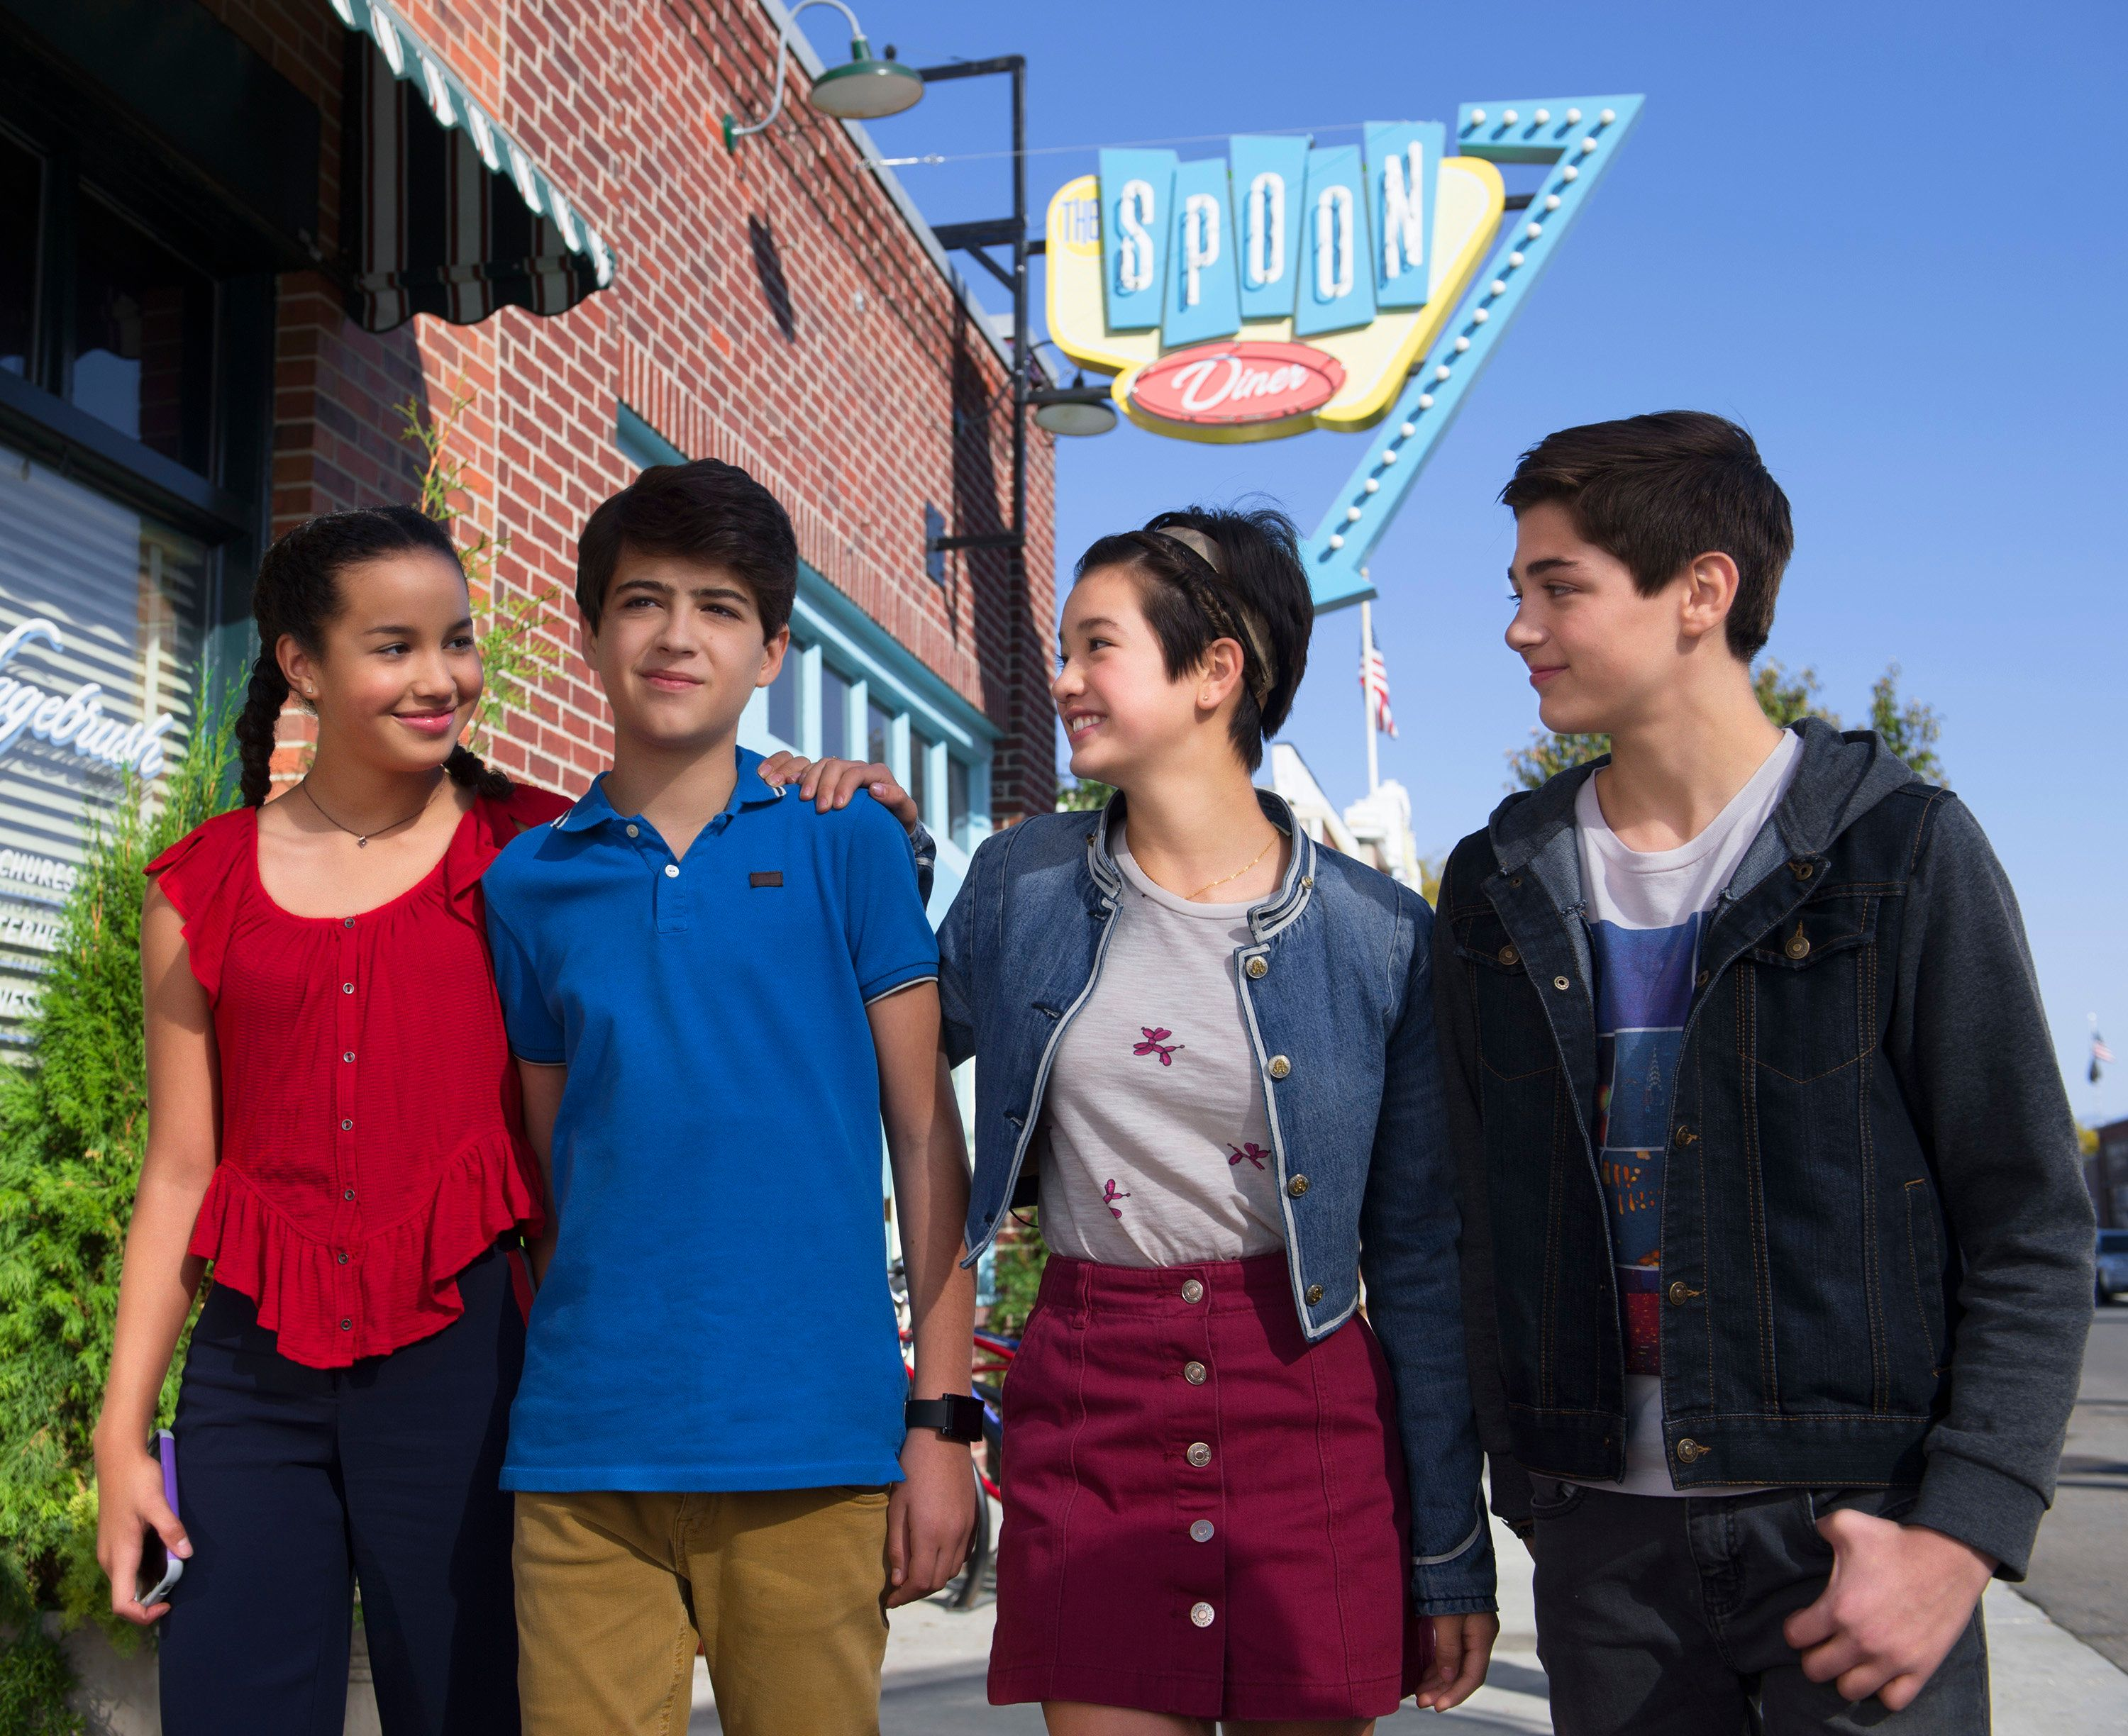 ANDI MACK - In 'Andi Mack,' a series about a 13 year-old girl and her friends each figuring out who they are, the teen characters model inclusion and respect for others. (Fred Hayes/Disney Channel via Getty Images)